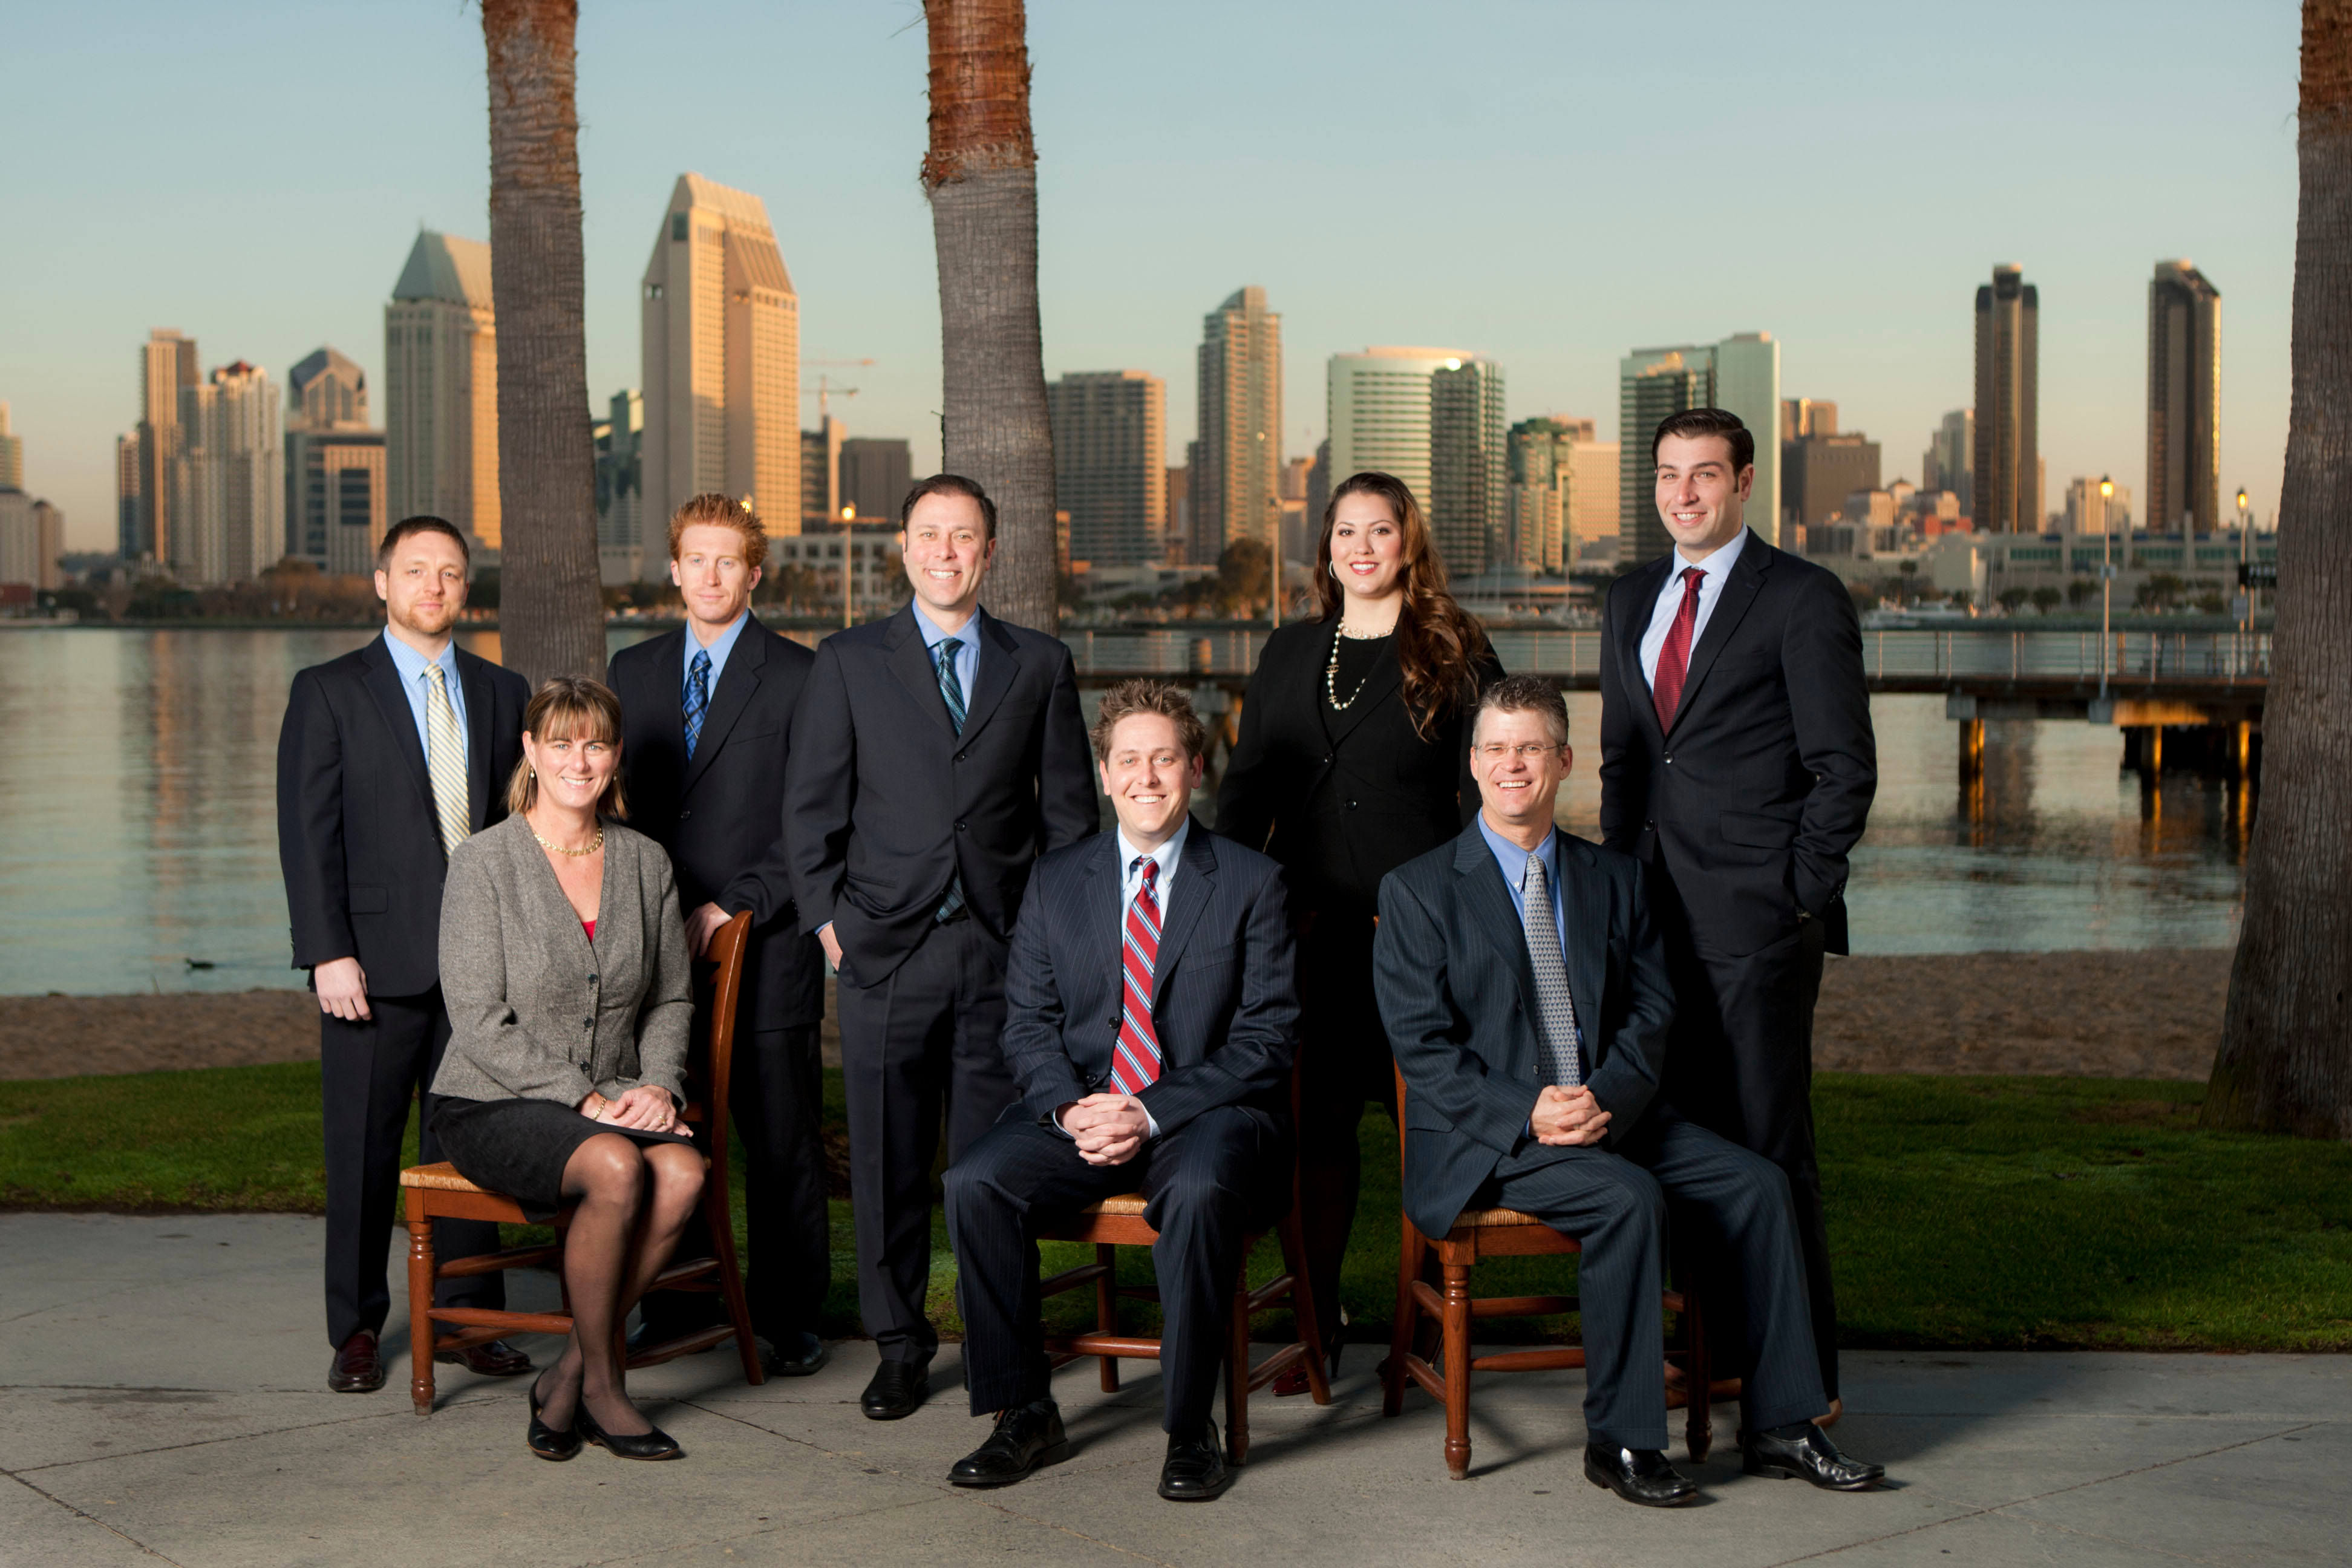 HIDEN, ROTT & OERTLE, LLP. Workers' Compensation & Personal Injury - ad image